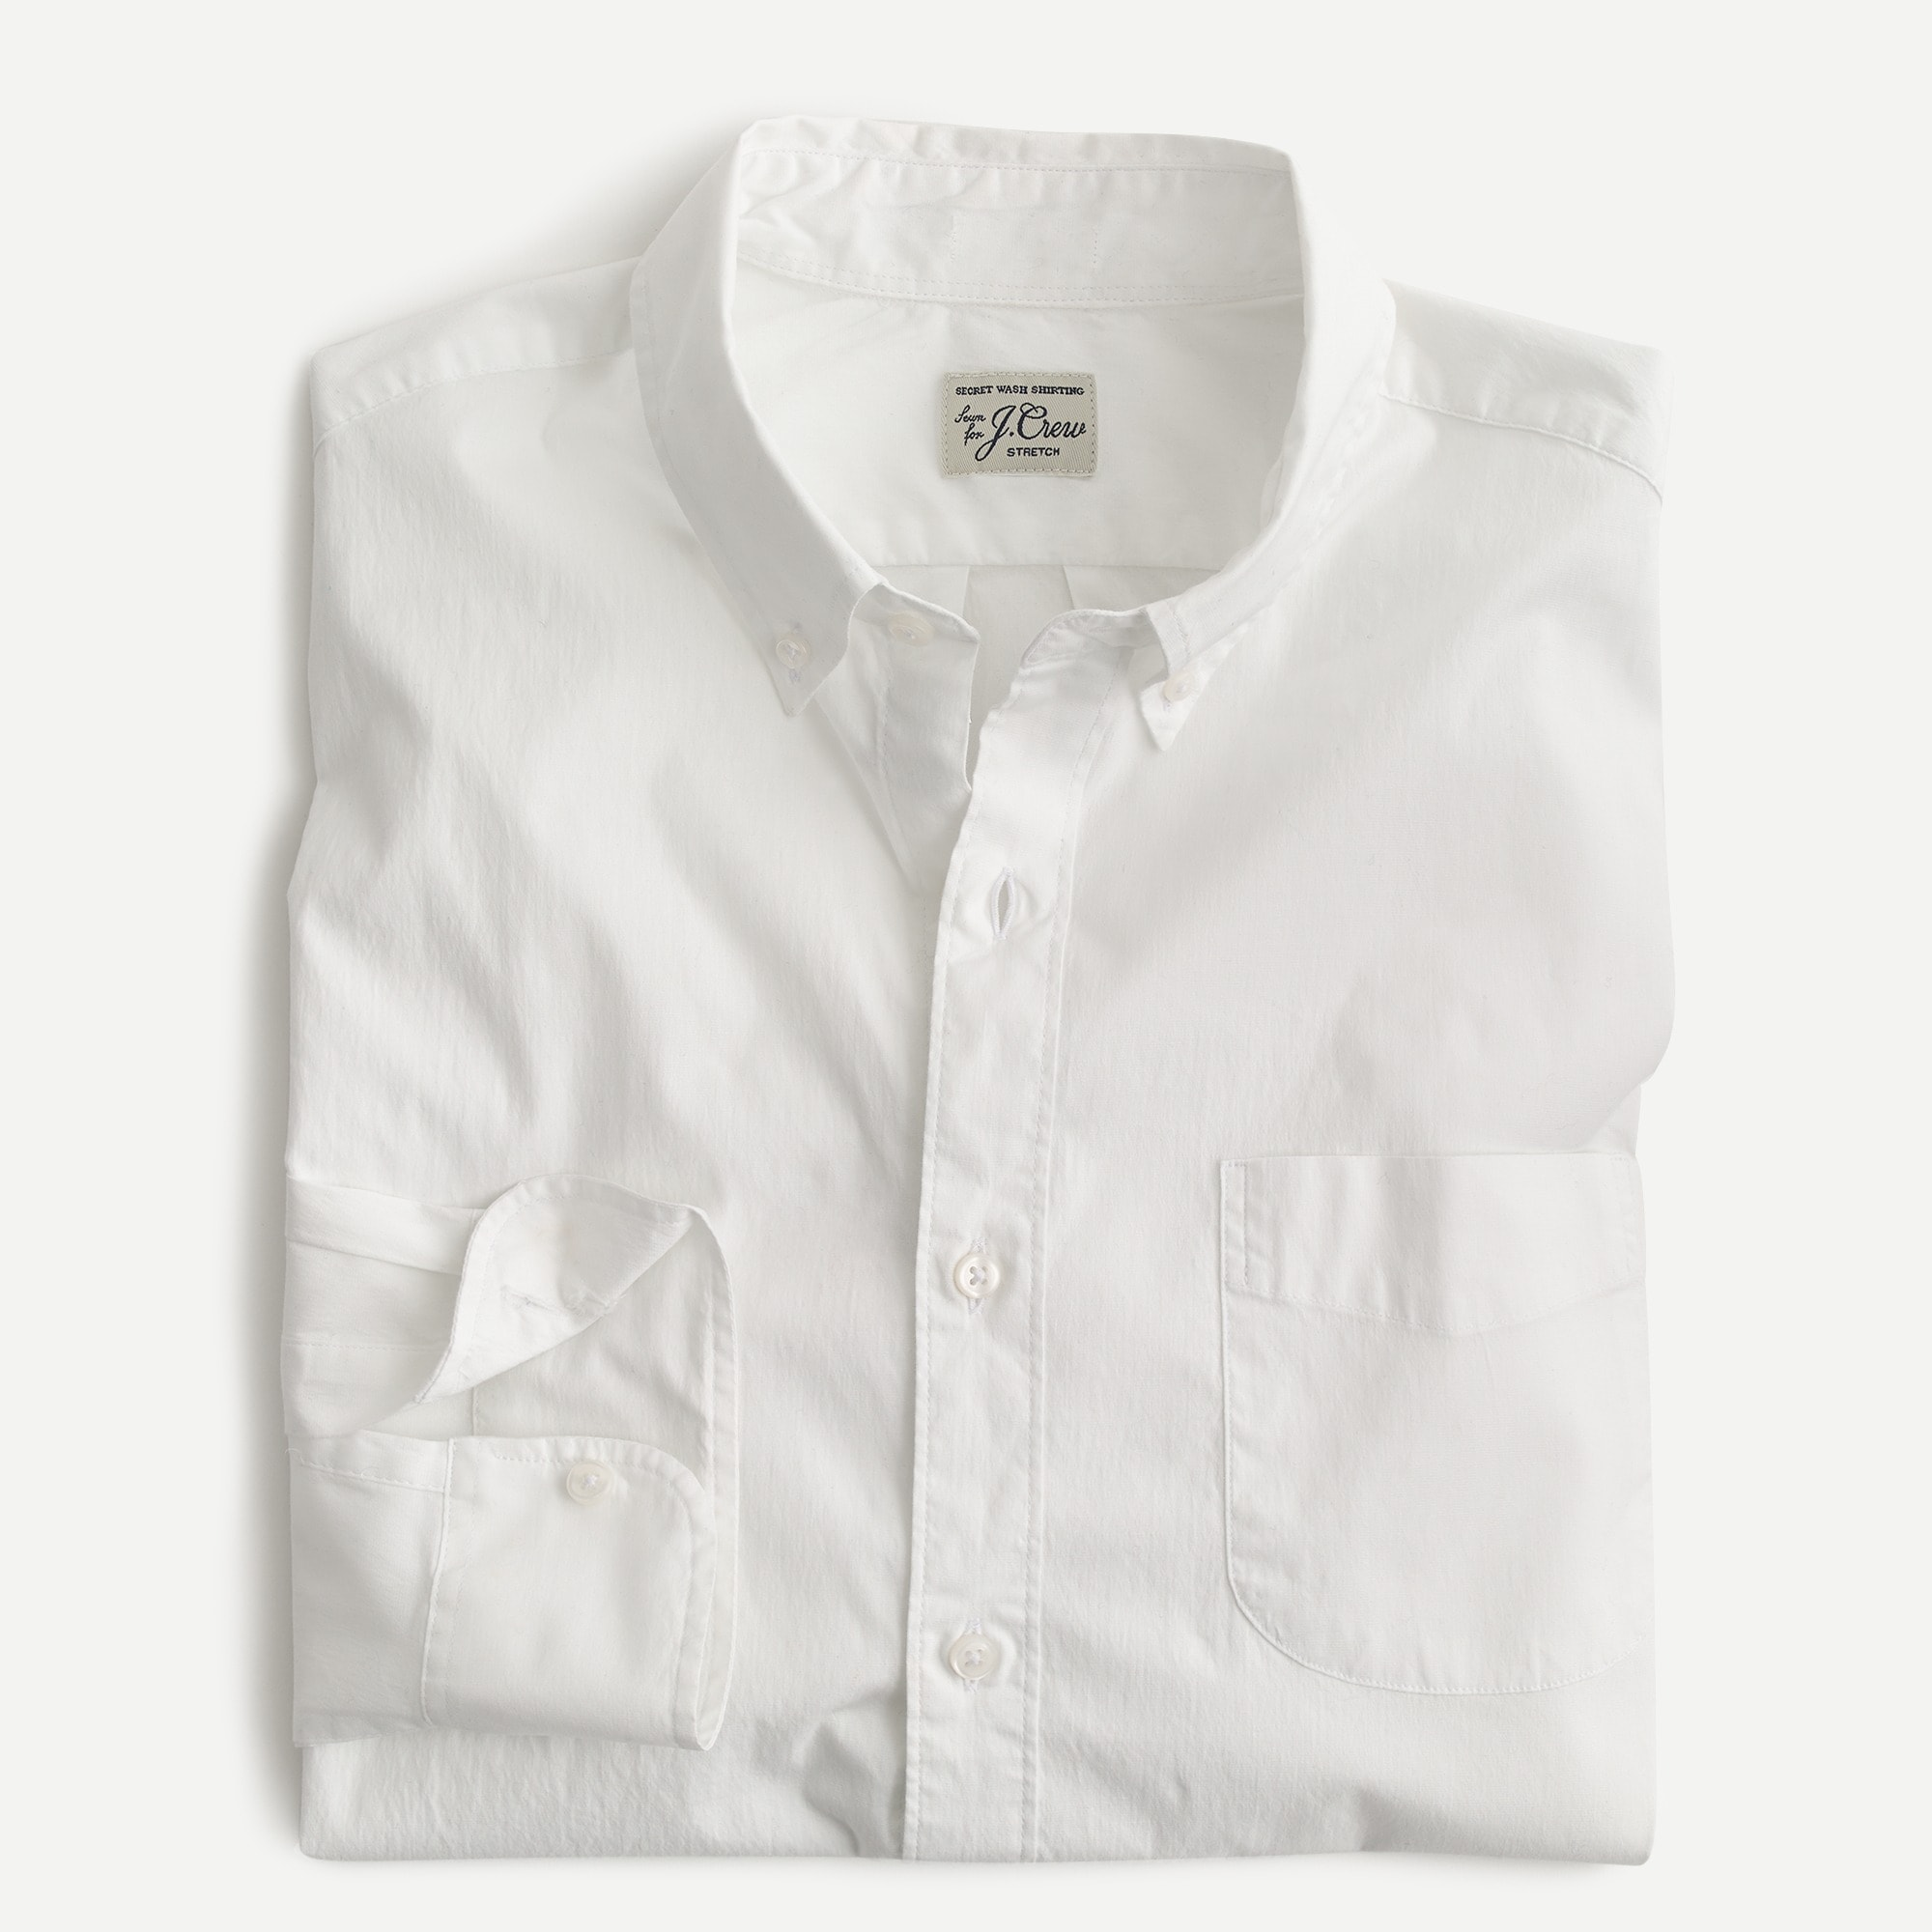 Image 2 for Slim stretch Secret Wash shirt in white poplin